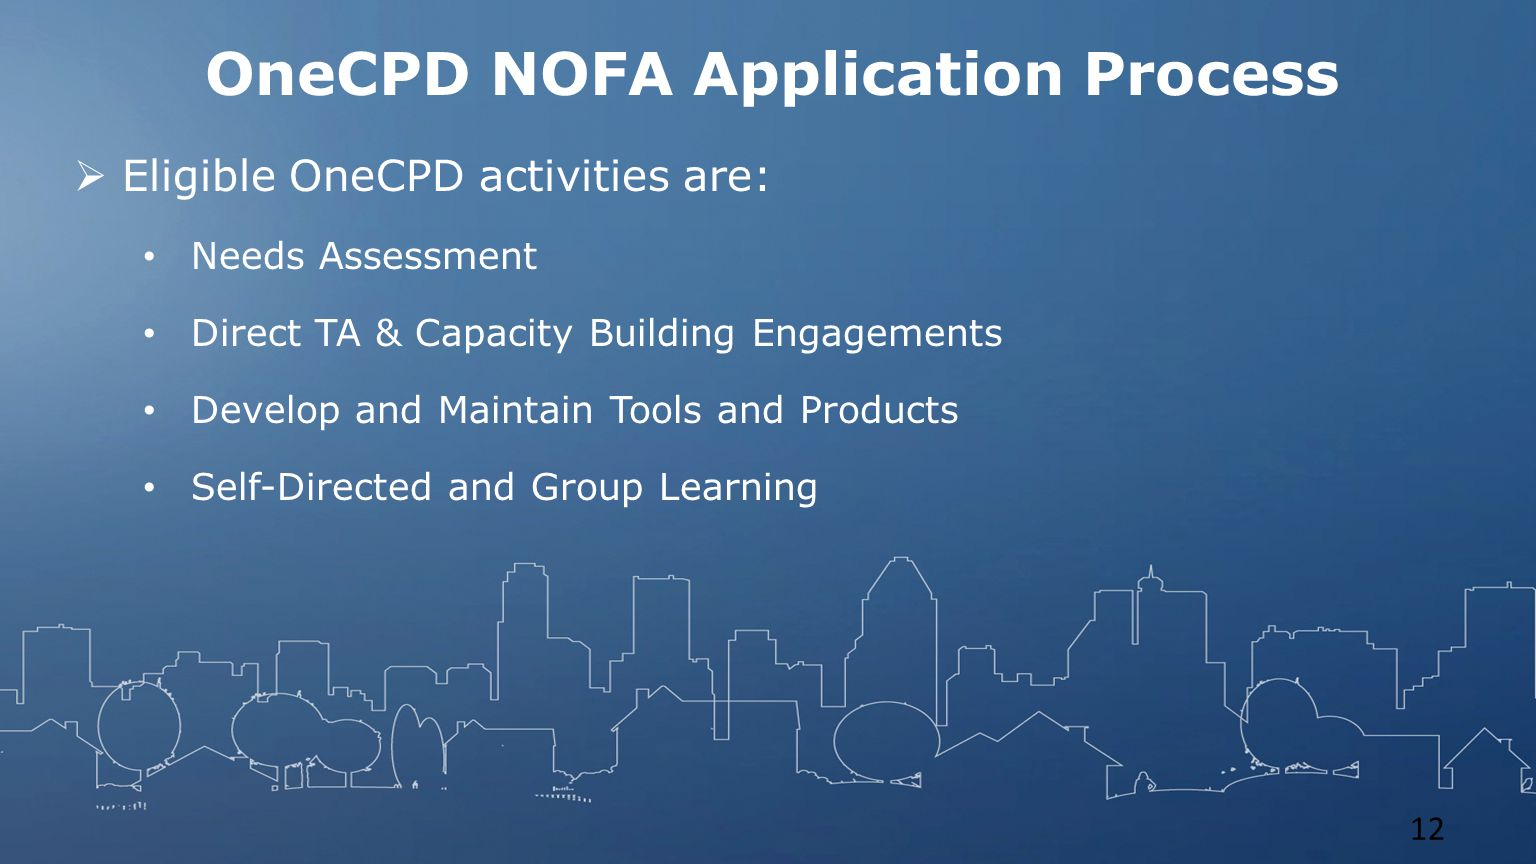 OneCPD NOFA Application Process  Eligible OneCPD activities are: Needs Assessment Direct TA & Capacity Building Engagements Develop and Maintain Tools and Products Self-Directed and Group Learning 12